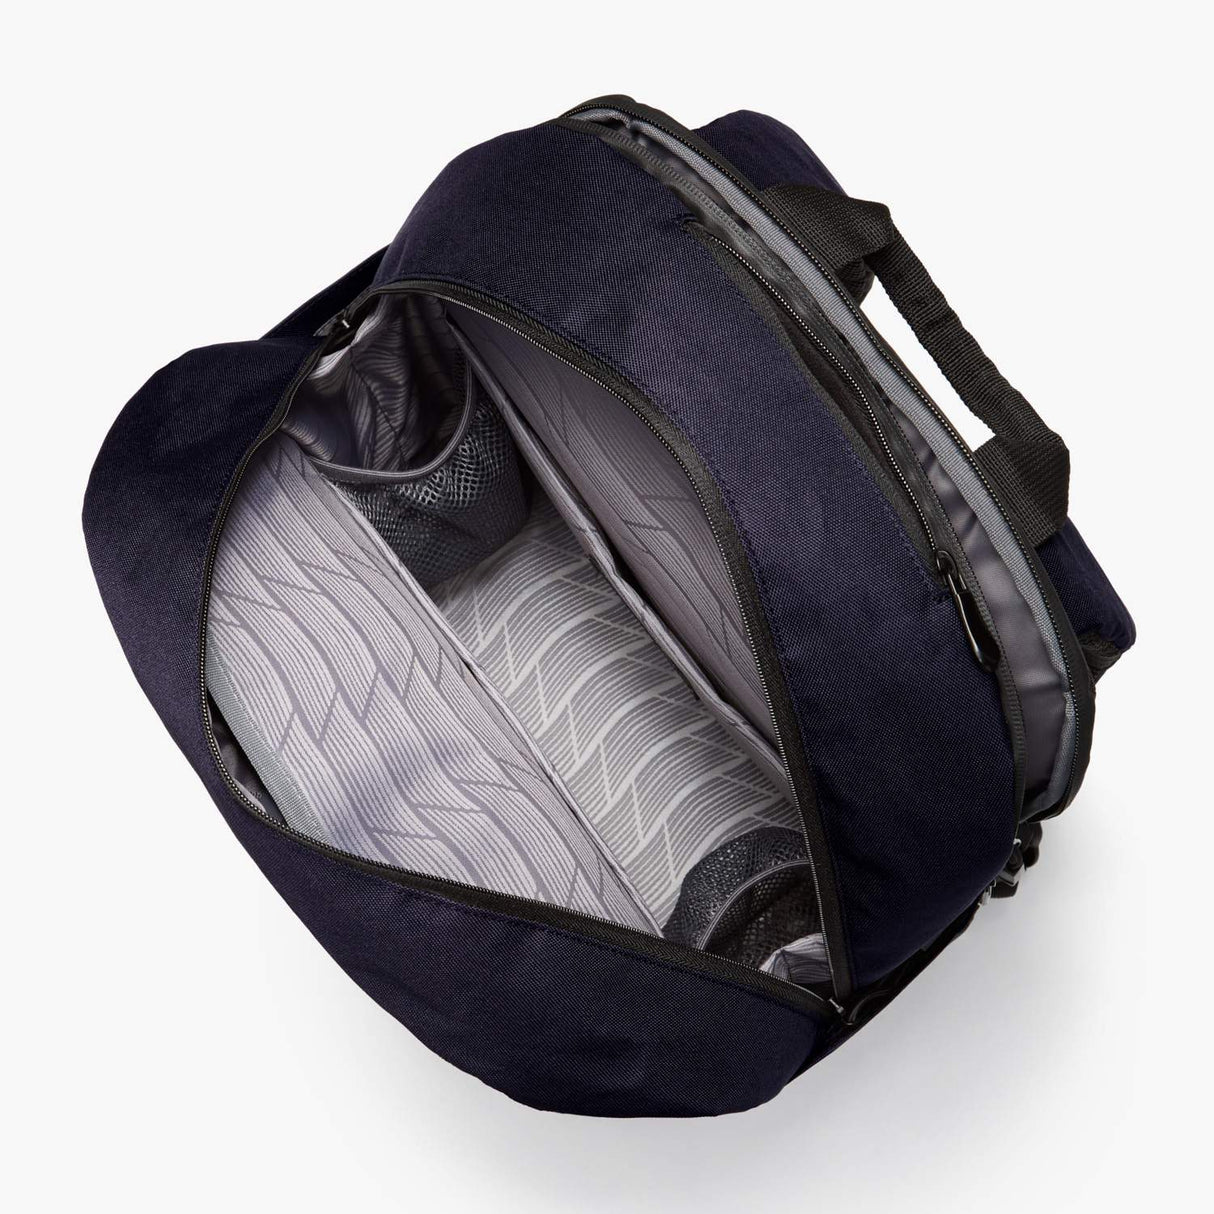 Interior Empty - Hanover Deluxe 2 - 600D Recycled Poly - Deep Navy - Backpack - Lo & Sons